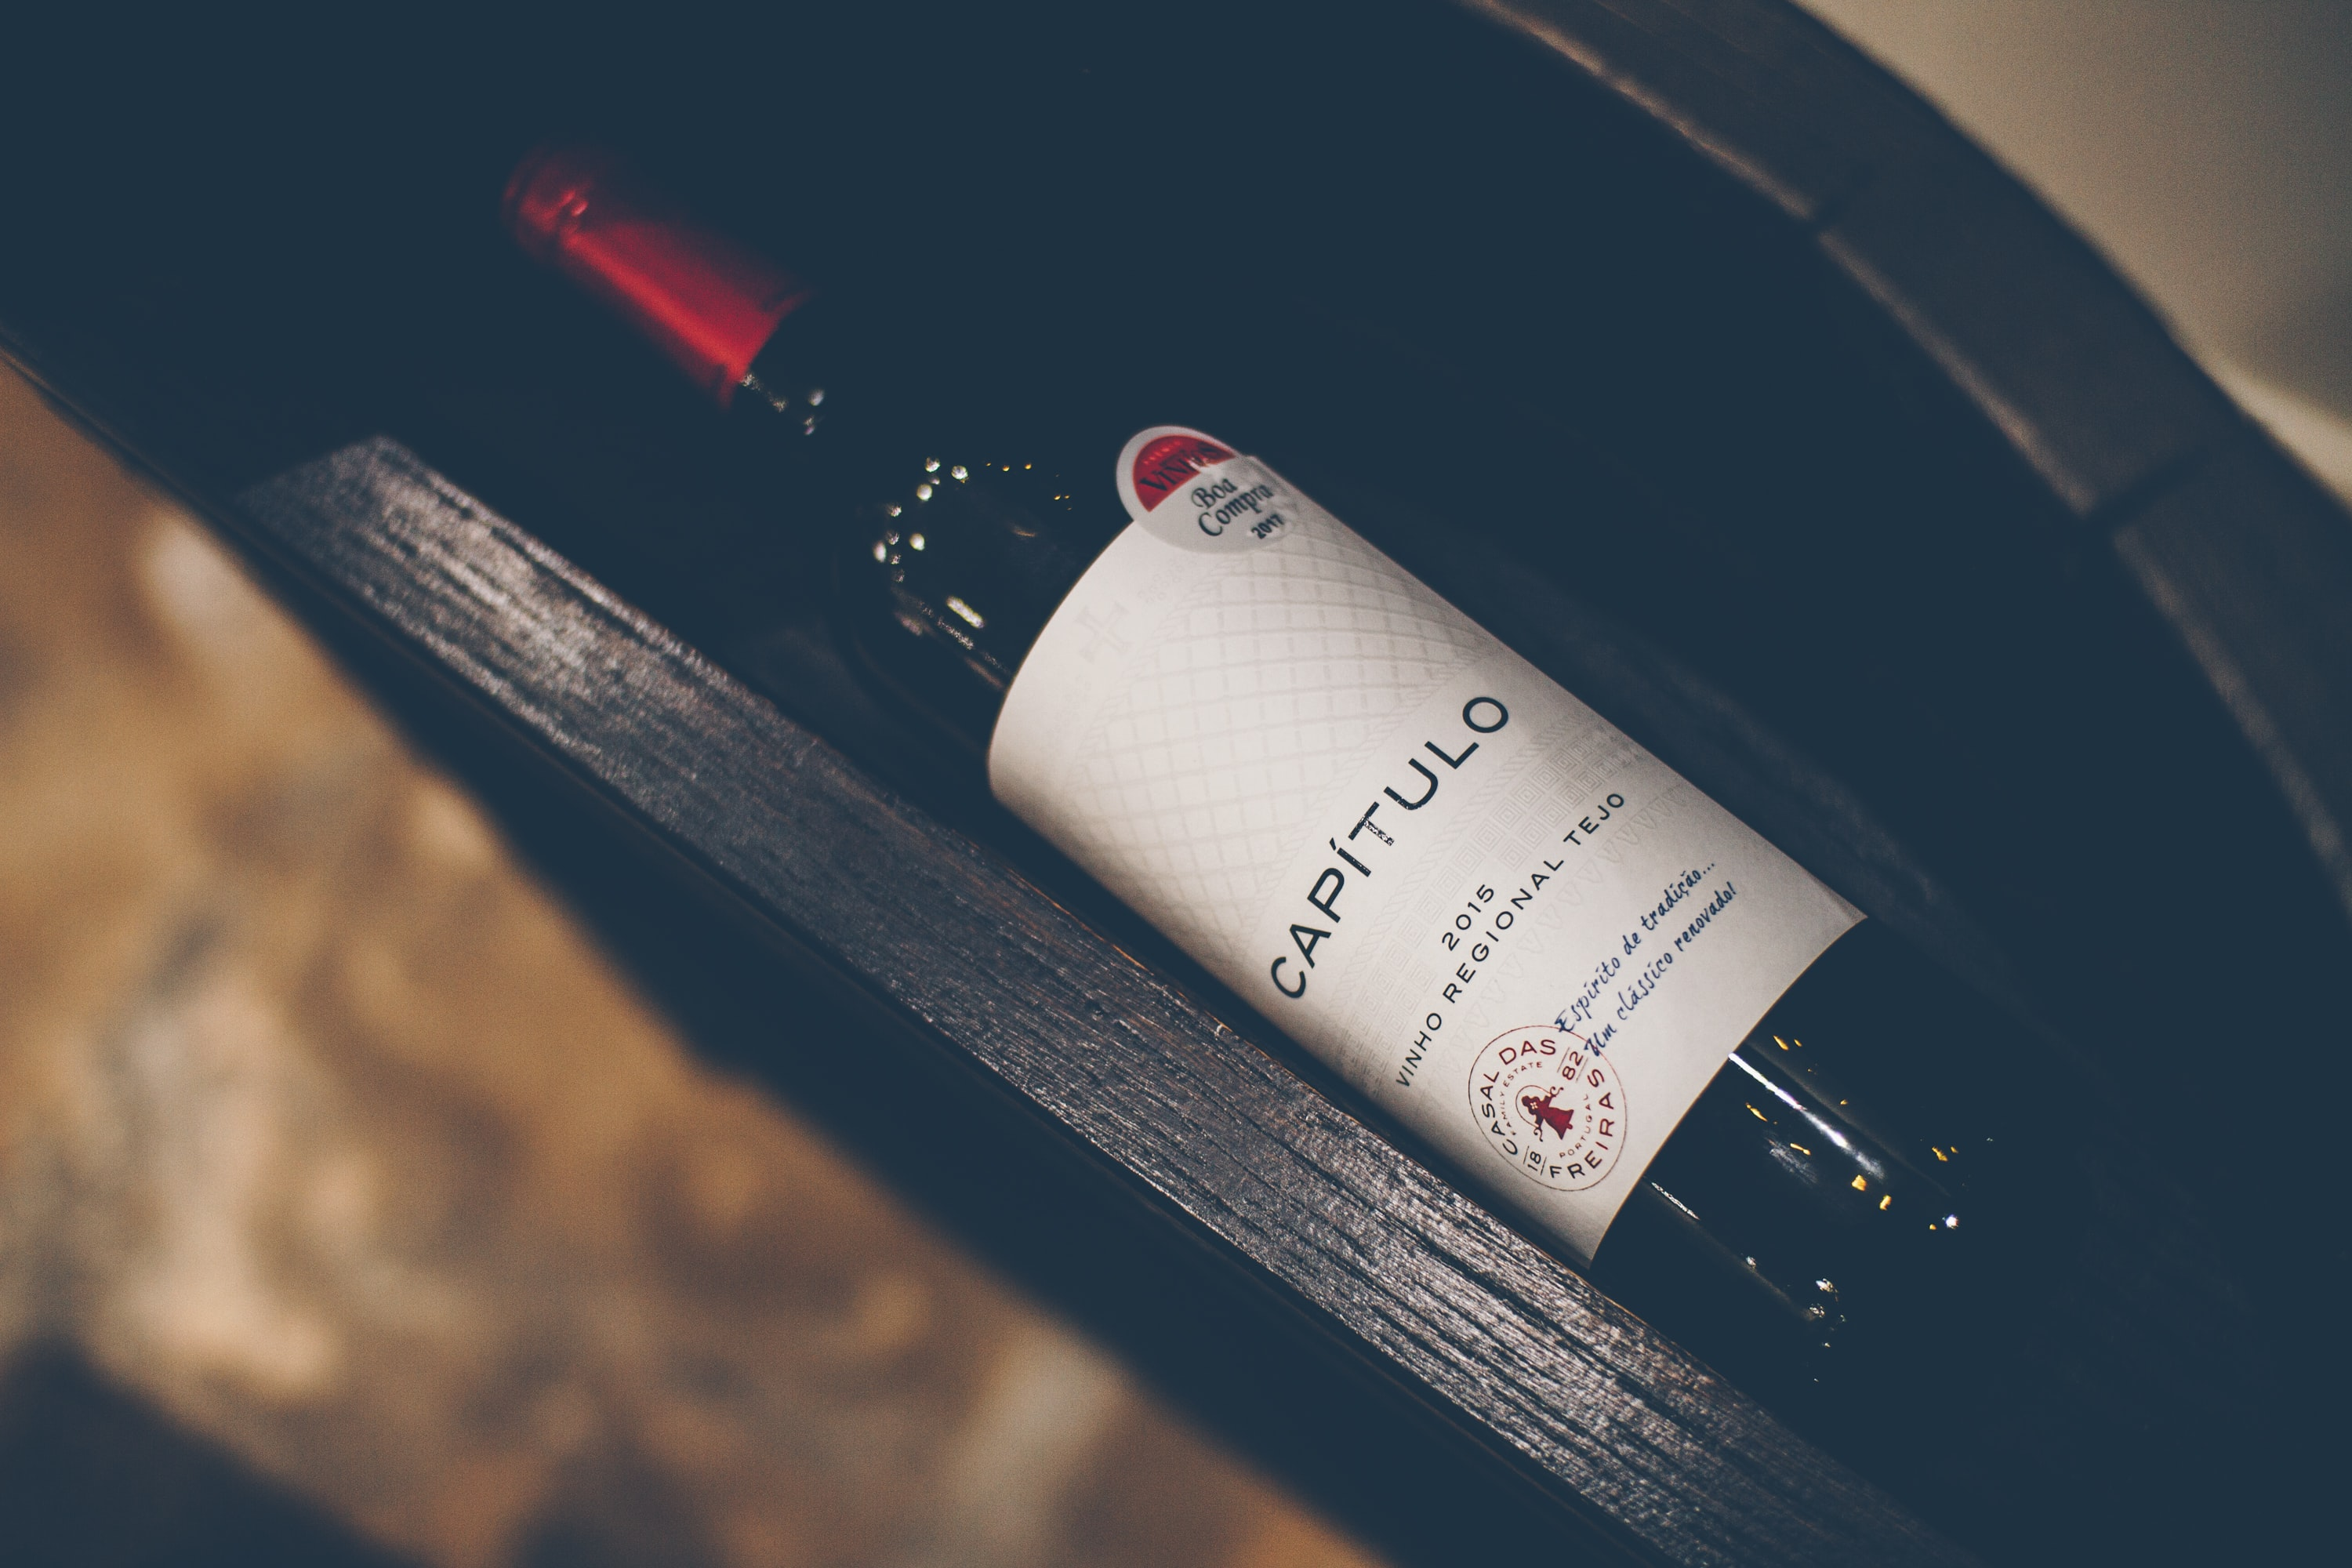 A bottle of unopened red wine inside a drawer.